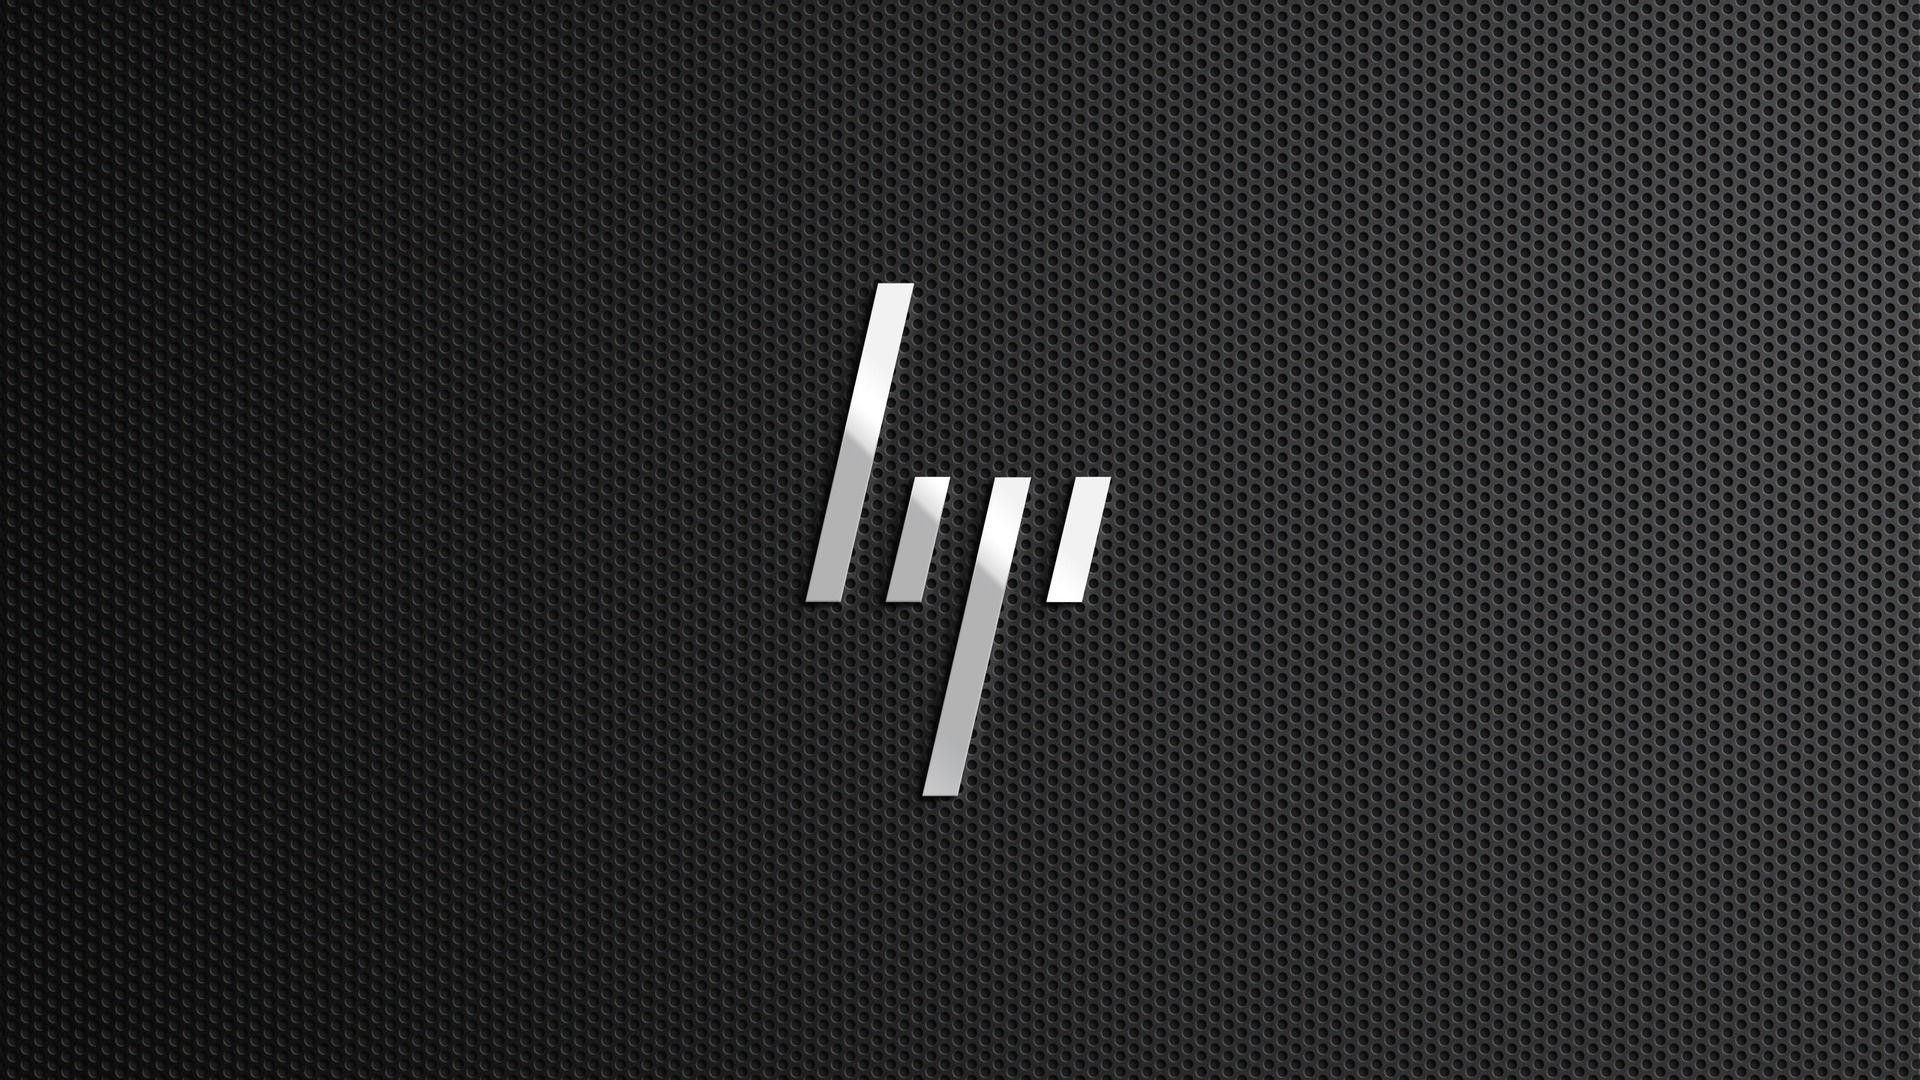 Cool HP Wallpapers   Top Cool HP Backgrounds   WallpaperAccess 1920x1080